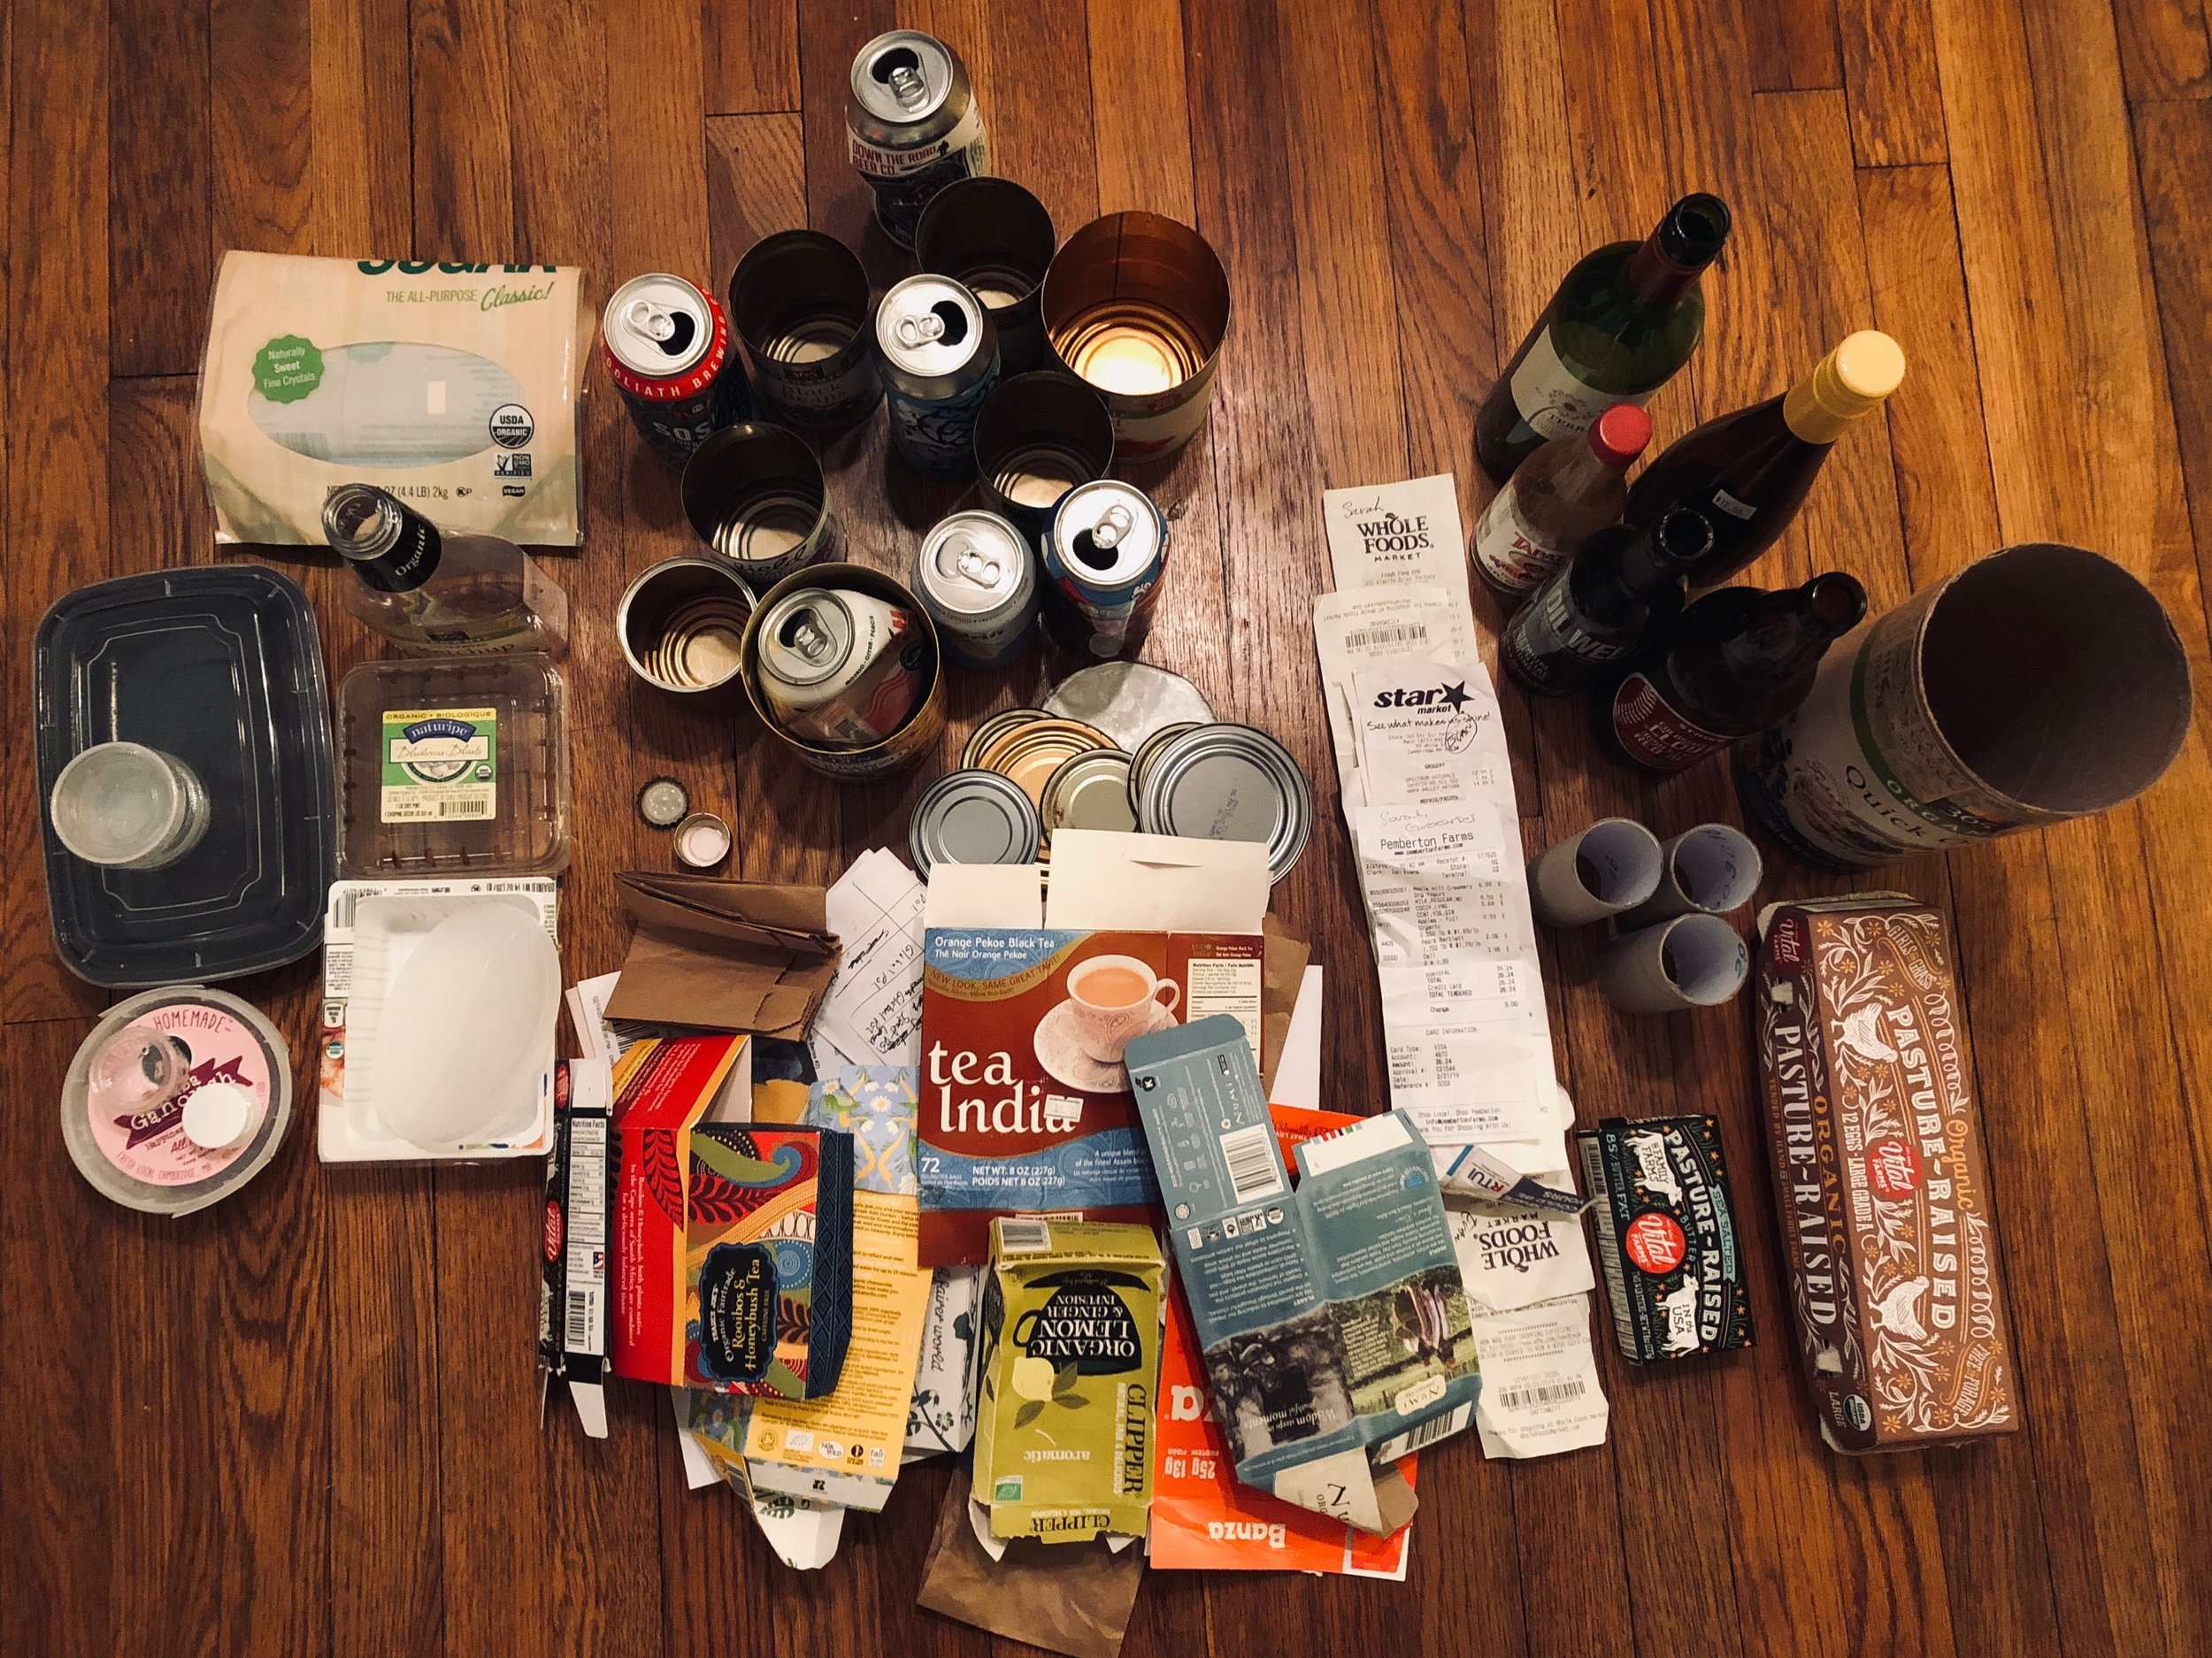 Photo from my most recent recycling bin audit (at-home recyclable waste produce over span of 2-weeks).